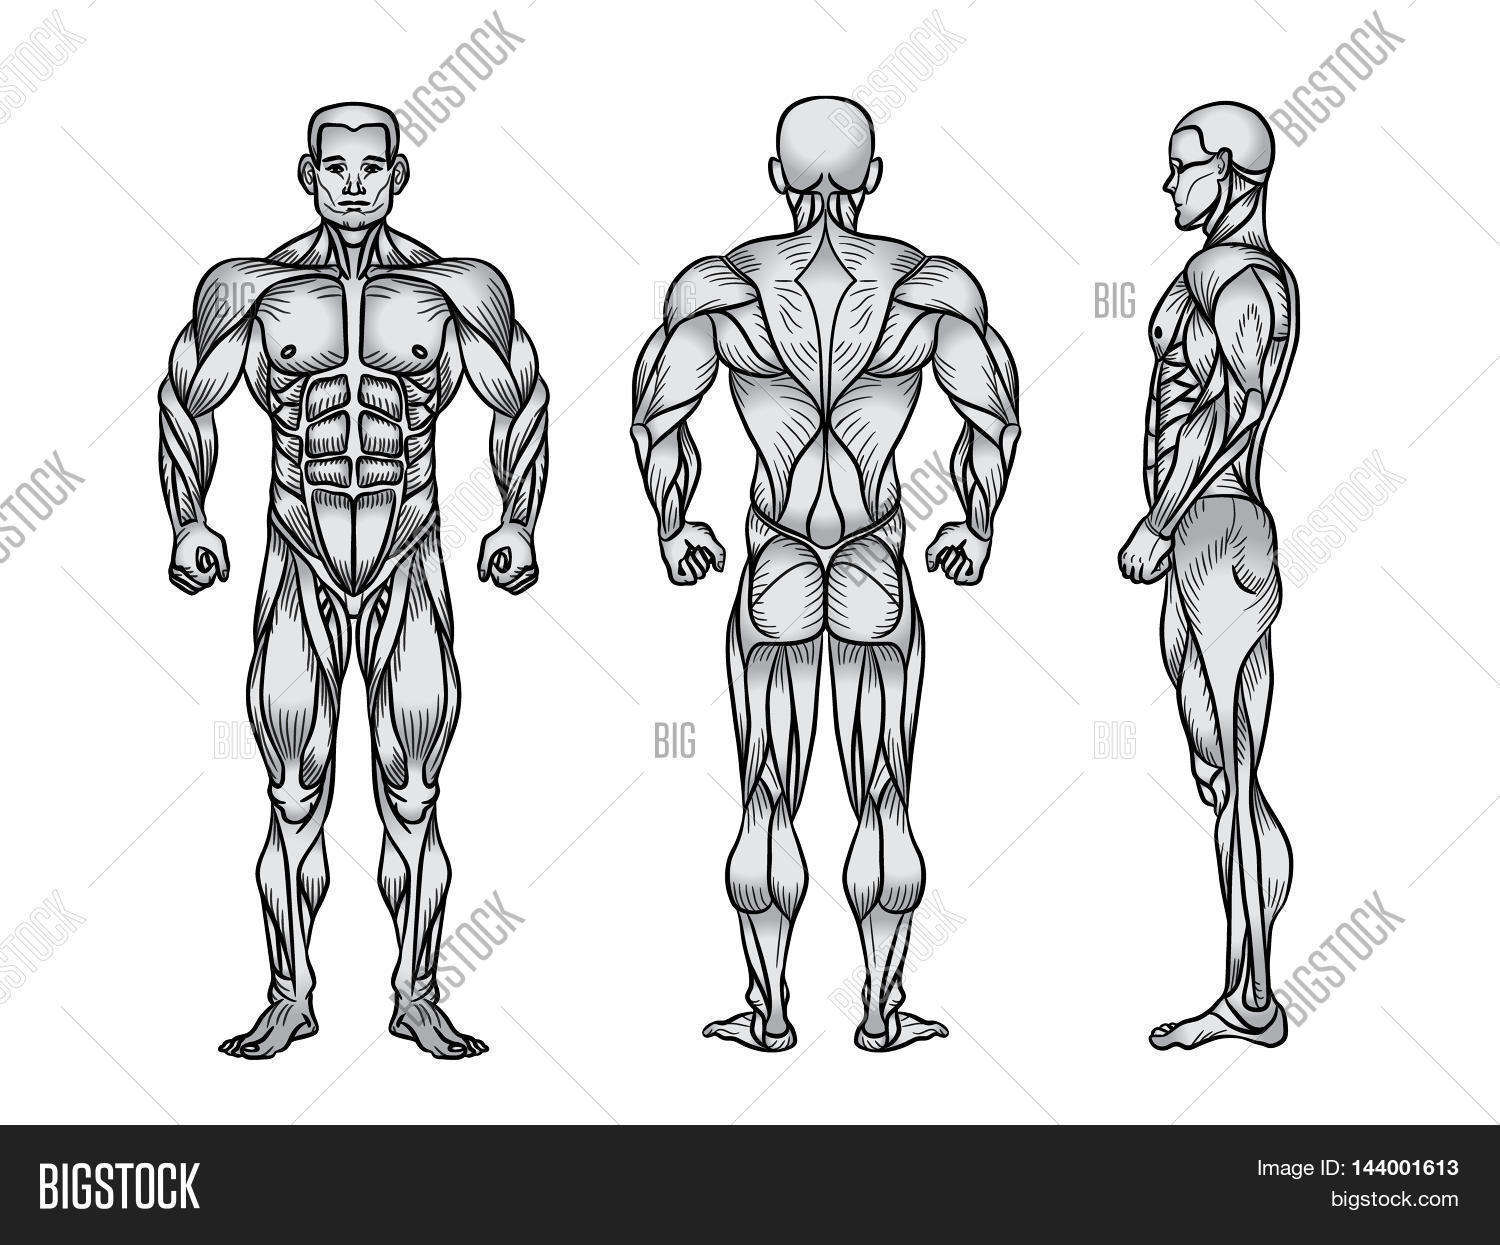 Anatomy Male Muscular Image & Photo (Free Trial) | Bigstock